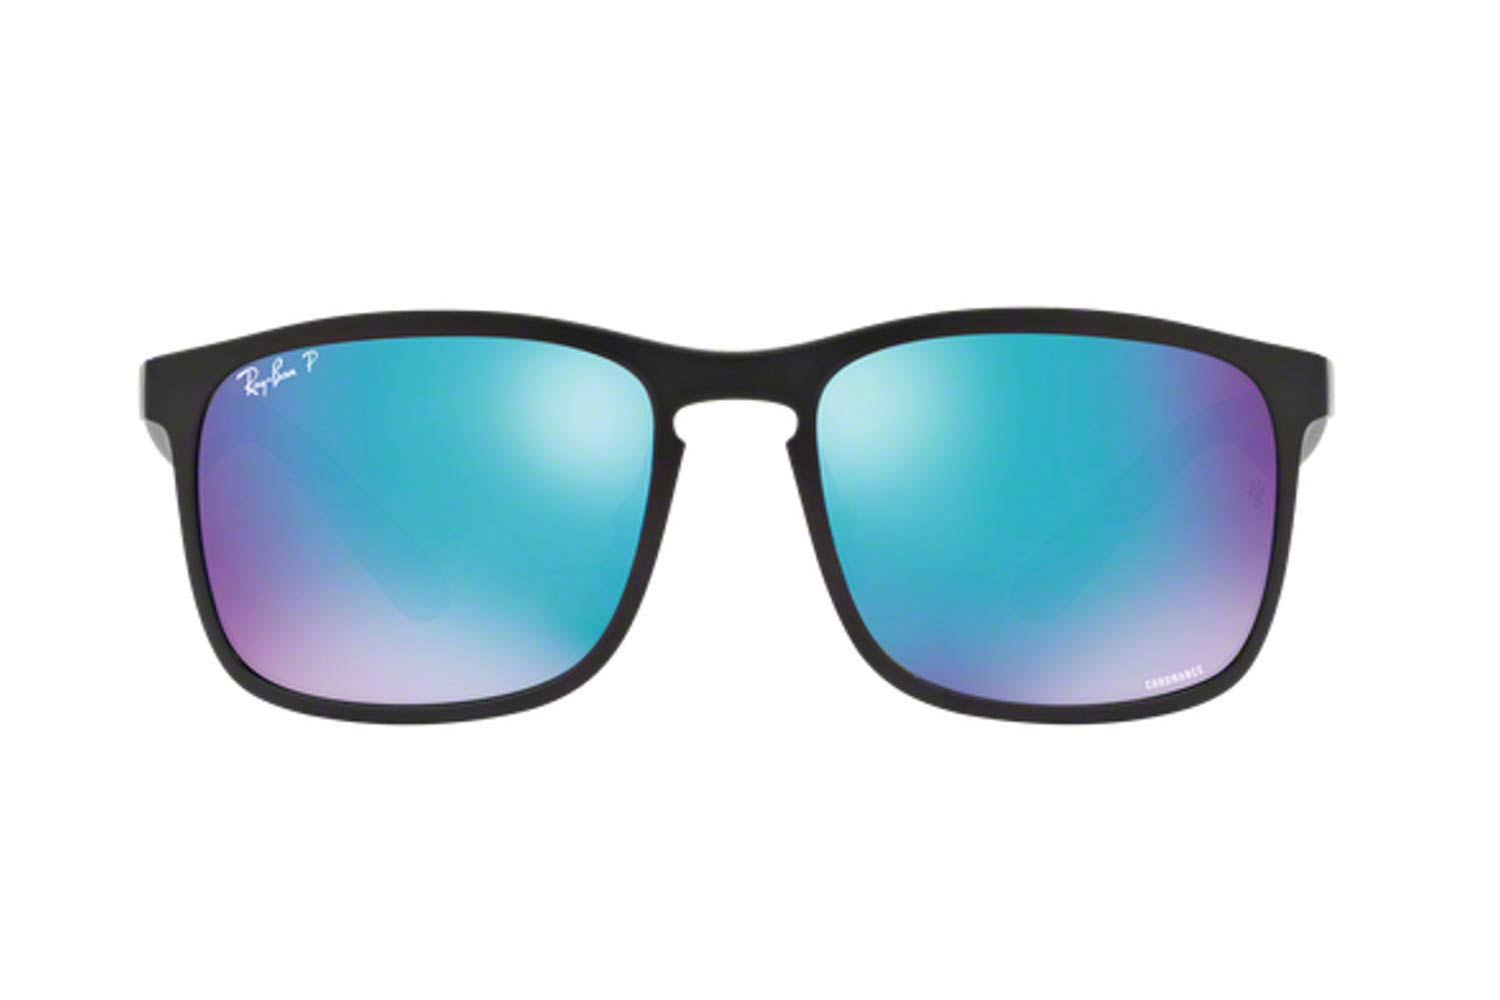 Image Result For Rayban C